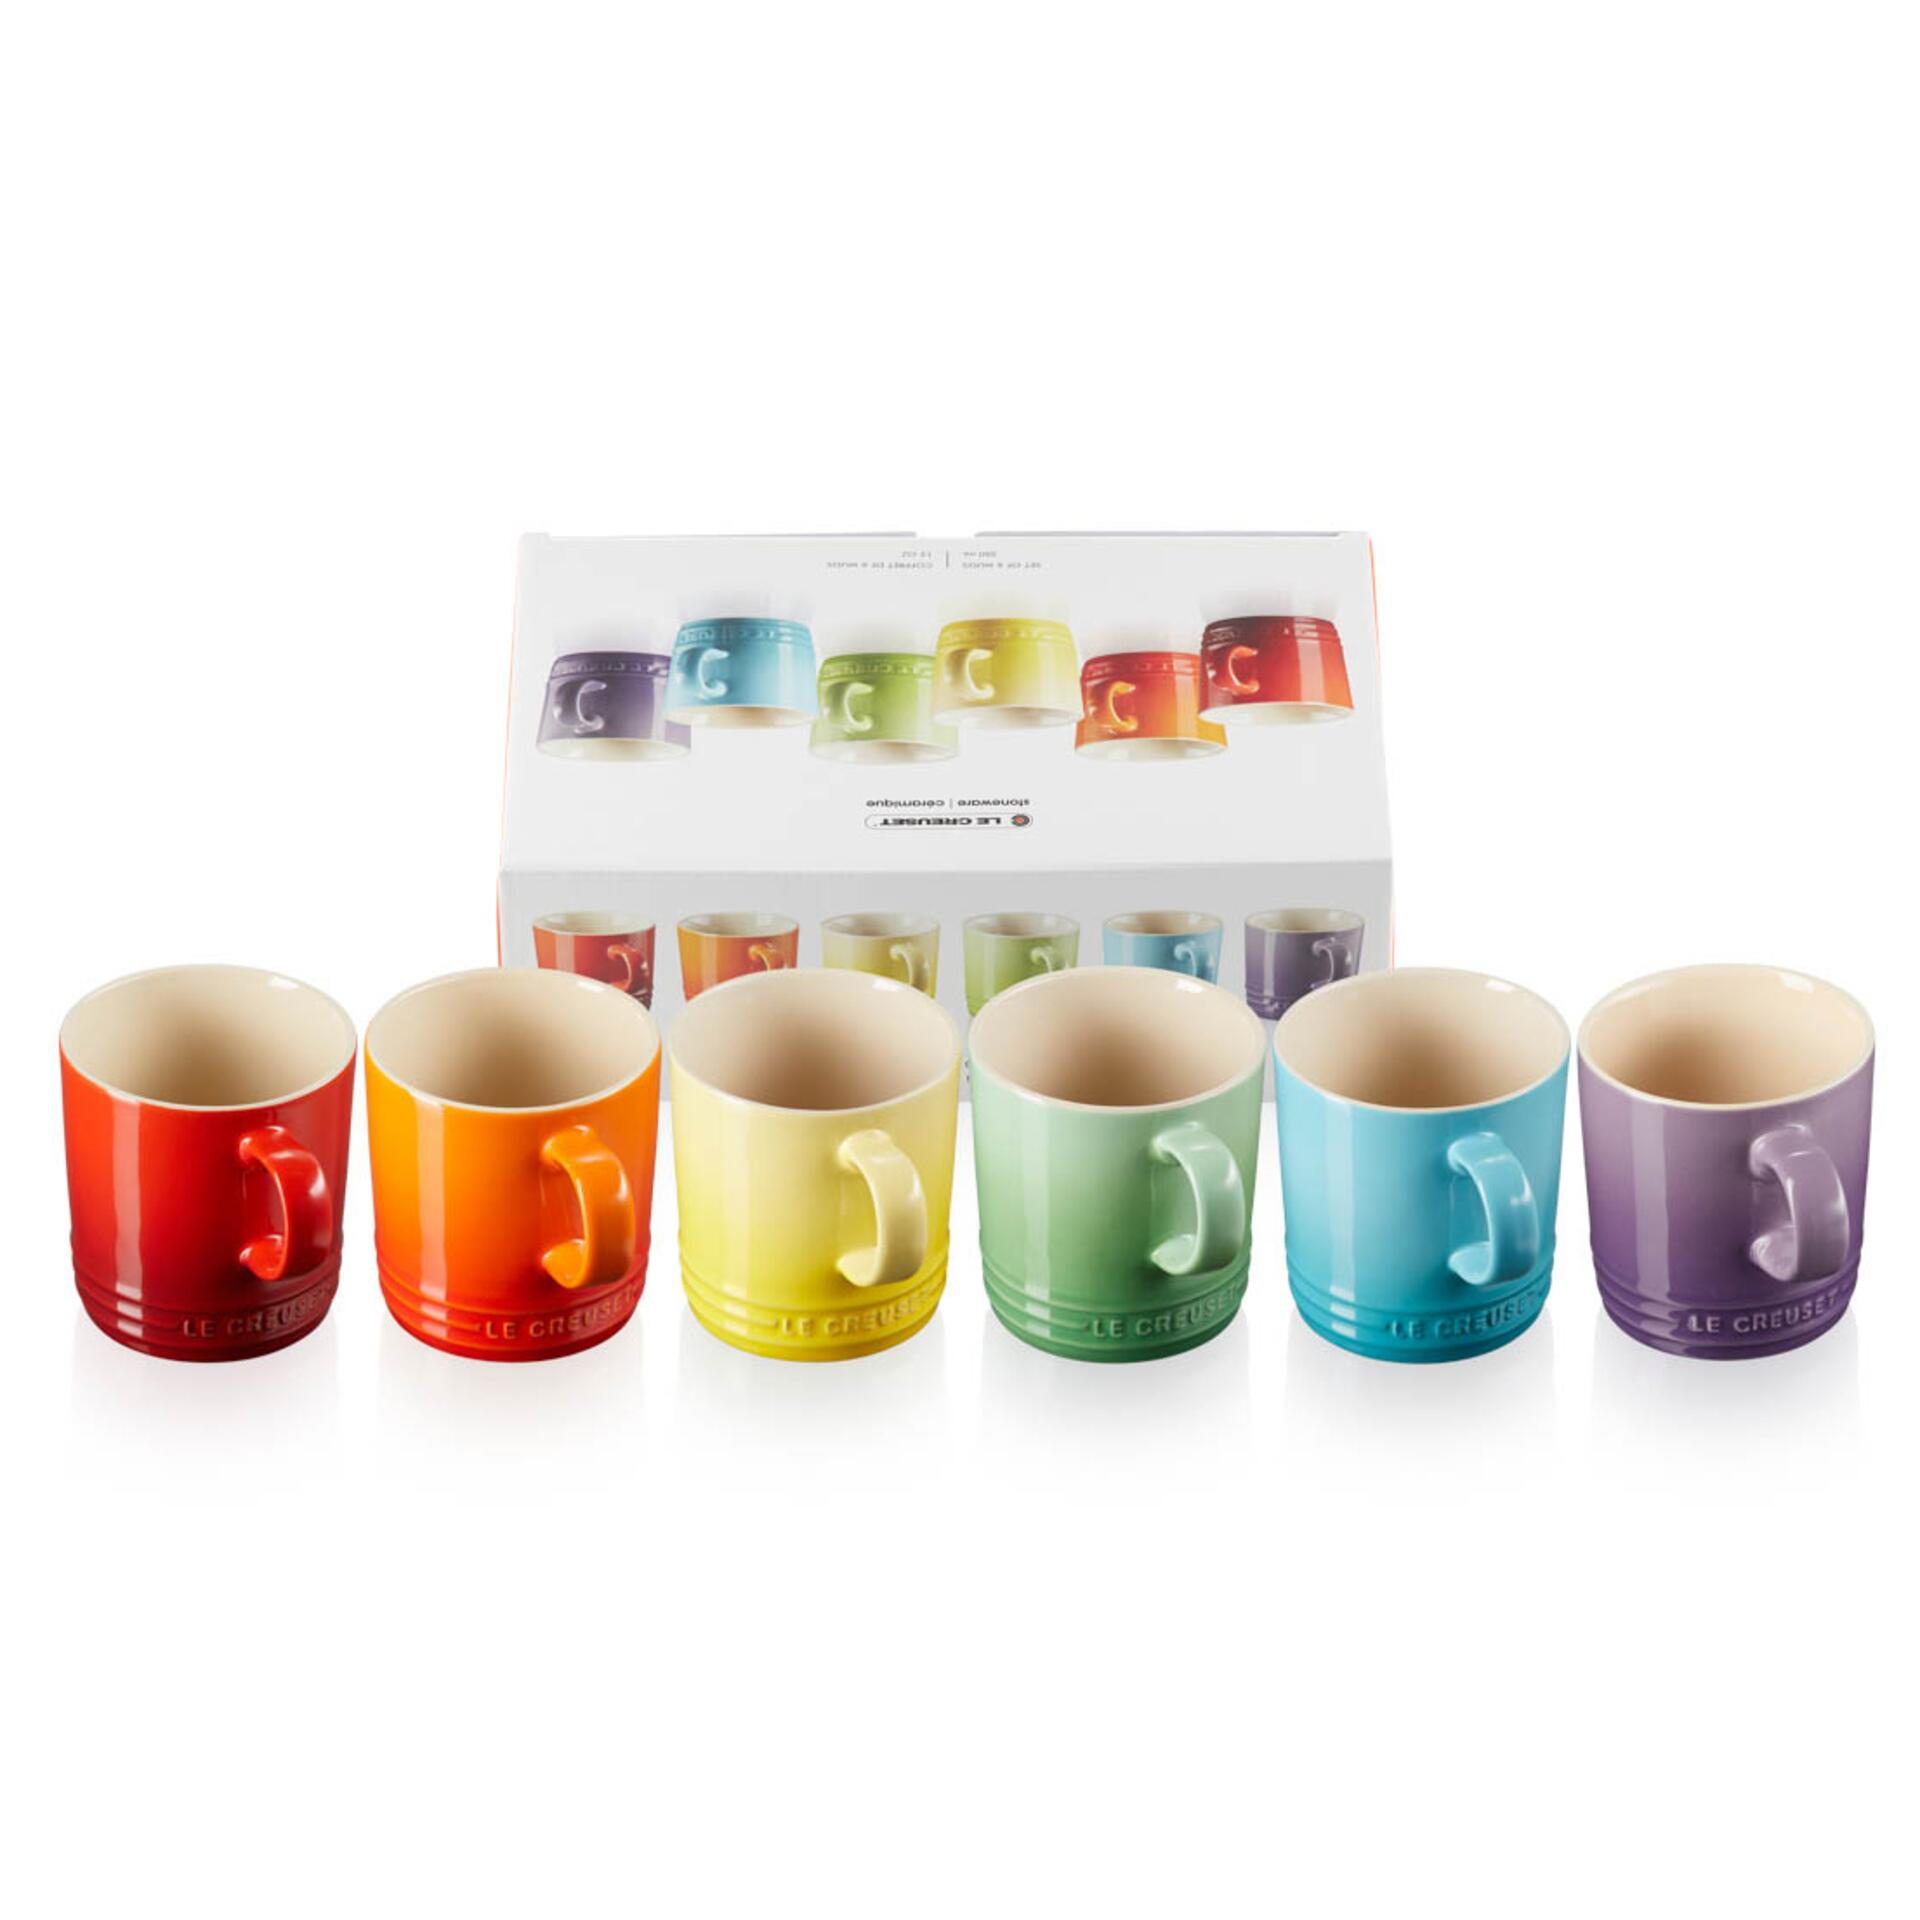 Le Creuset Becher 350 ml 6er-Set Regenbogen